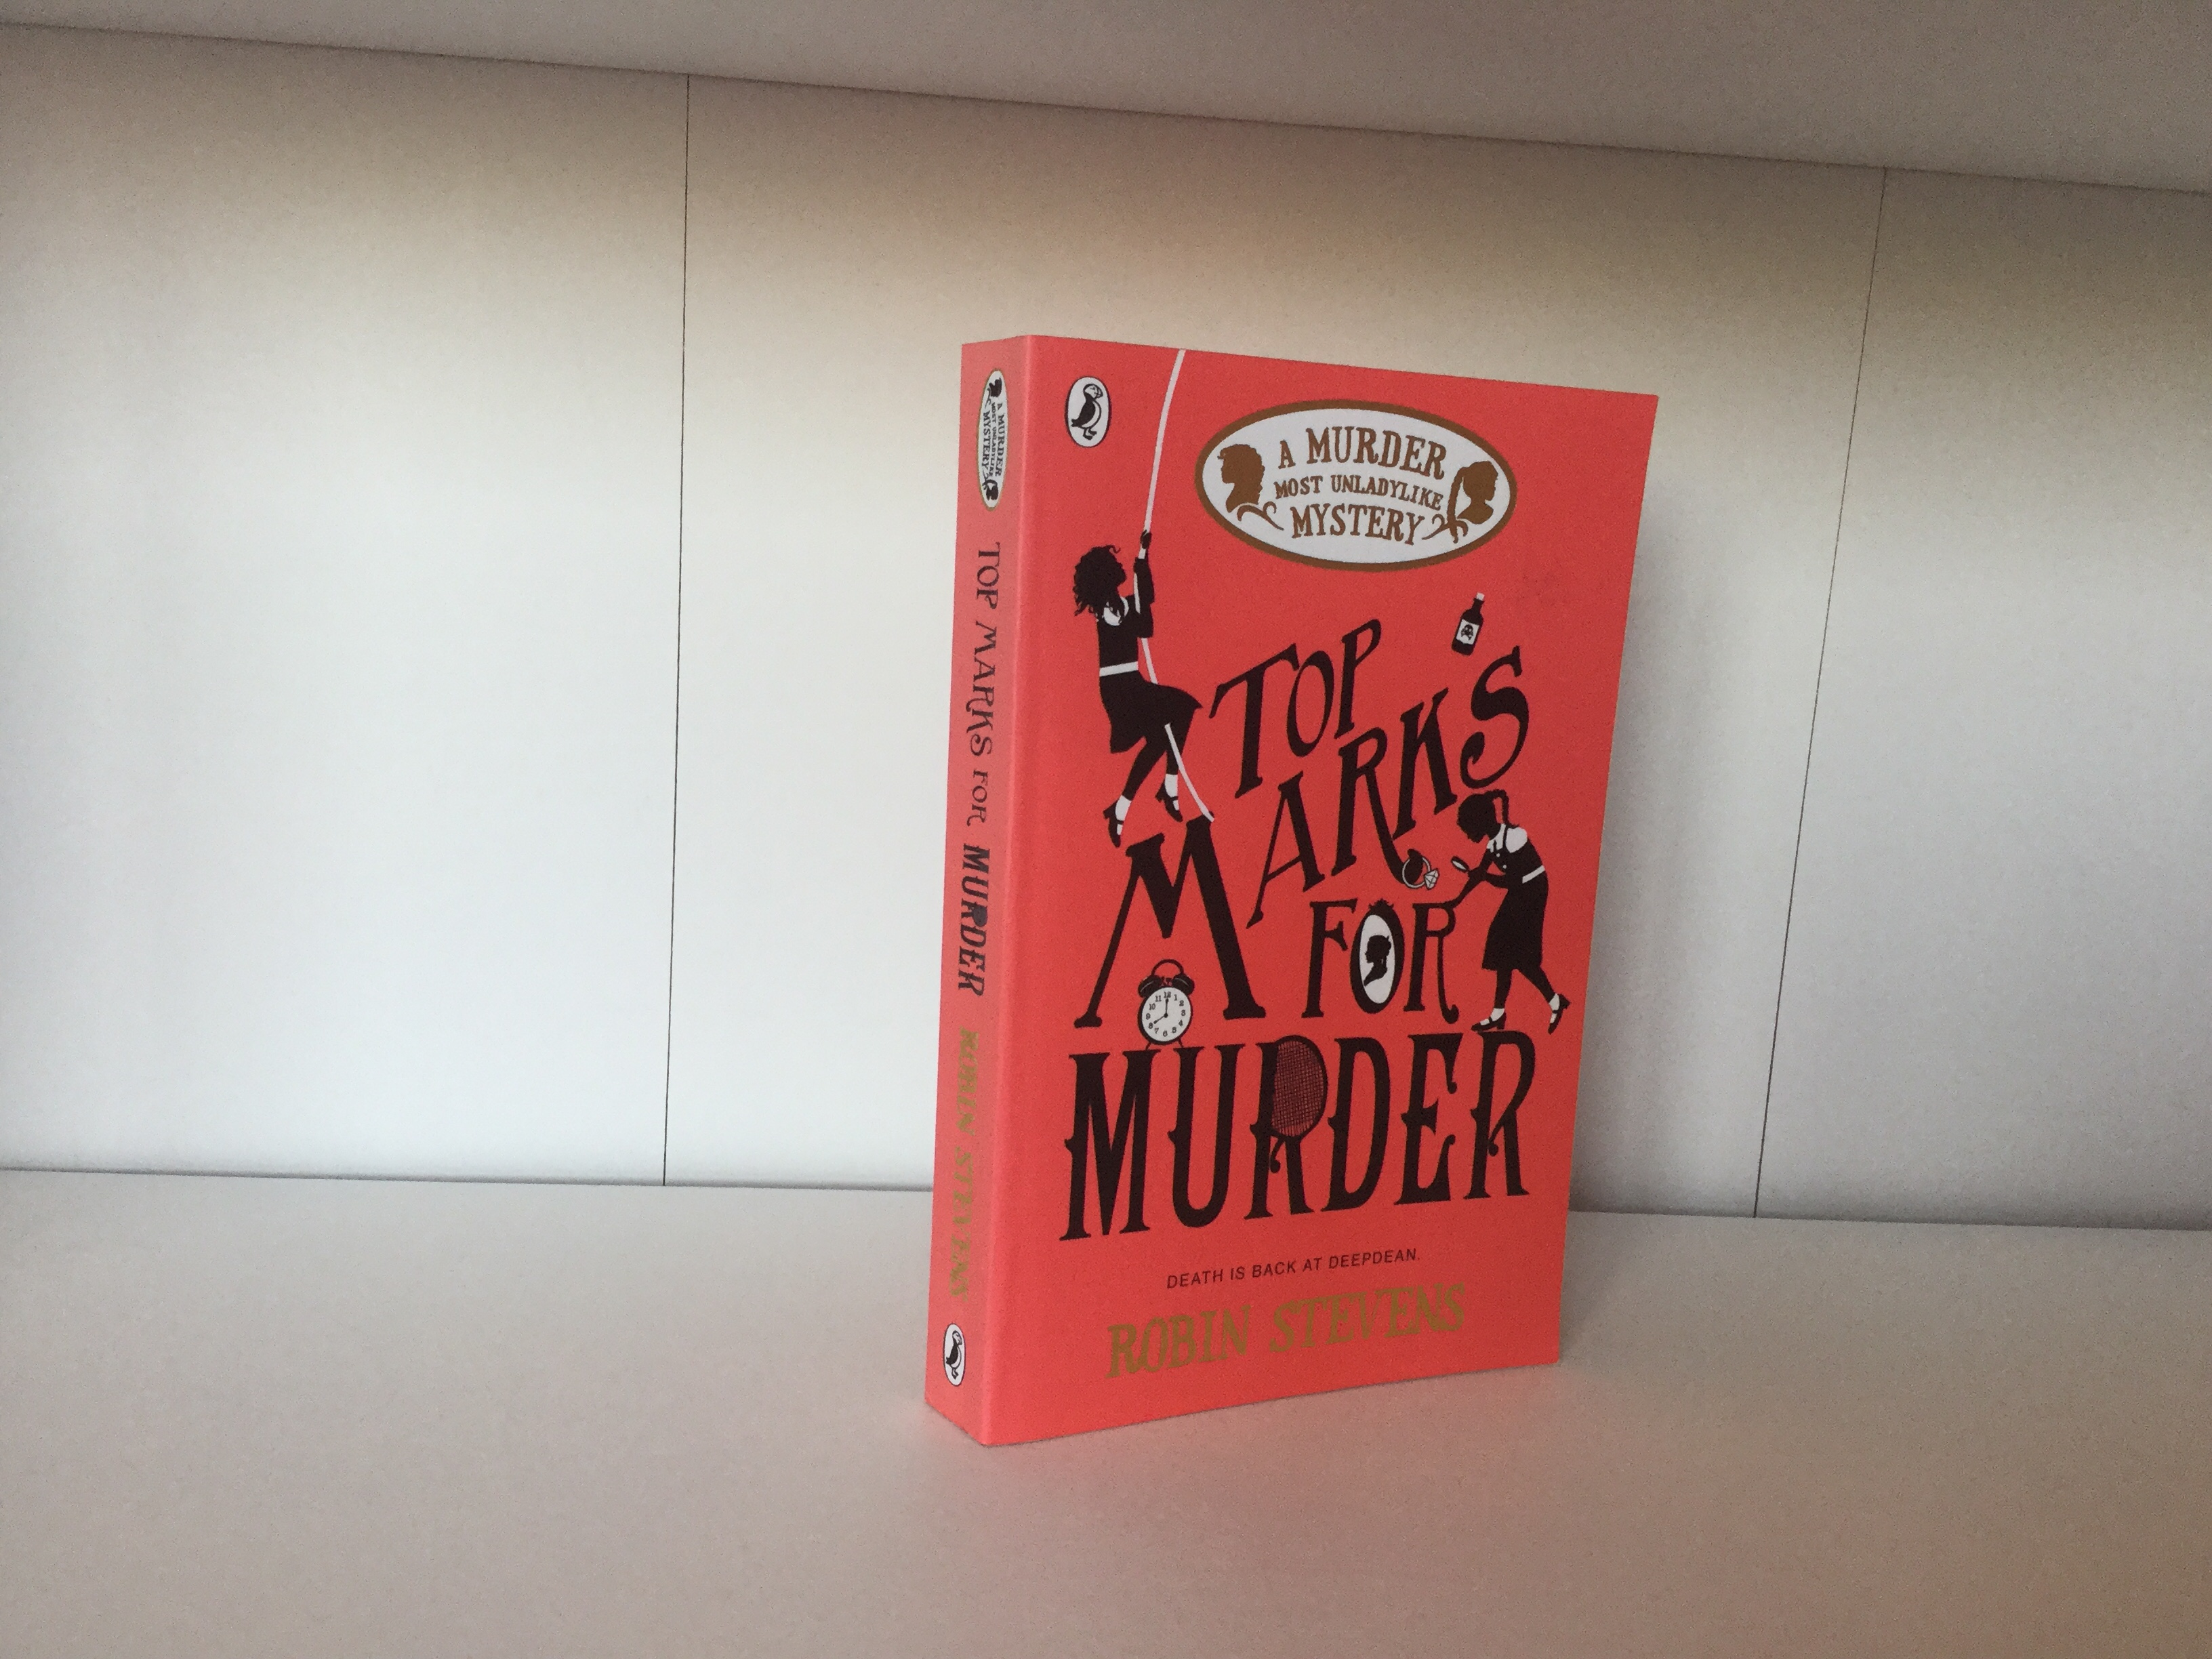 The cover of Top Marks for Murder by Robin Stevens